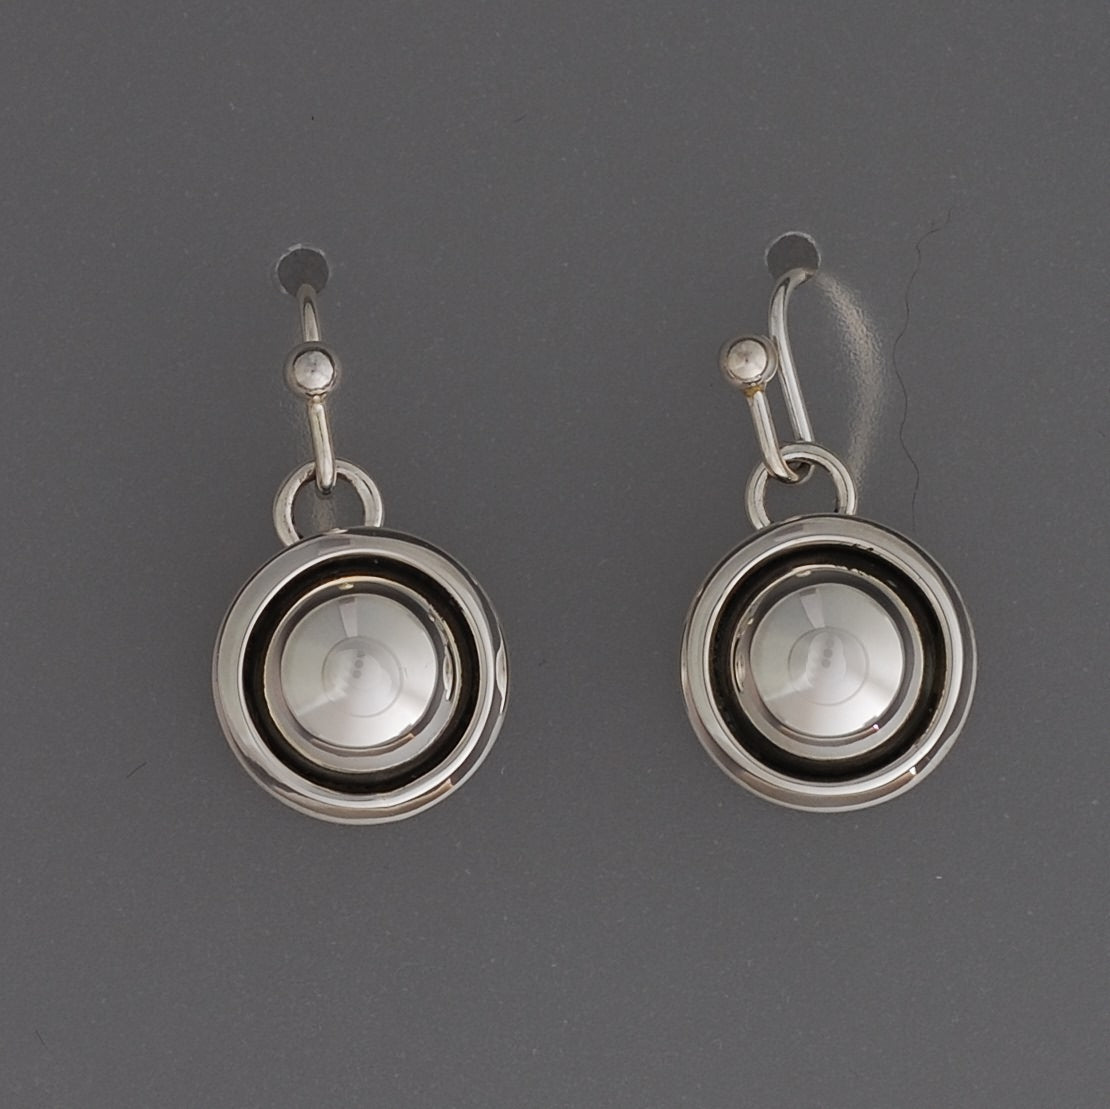 Small Dome Earrings on wires by Artie Yellowhorse